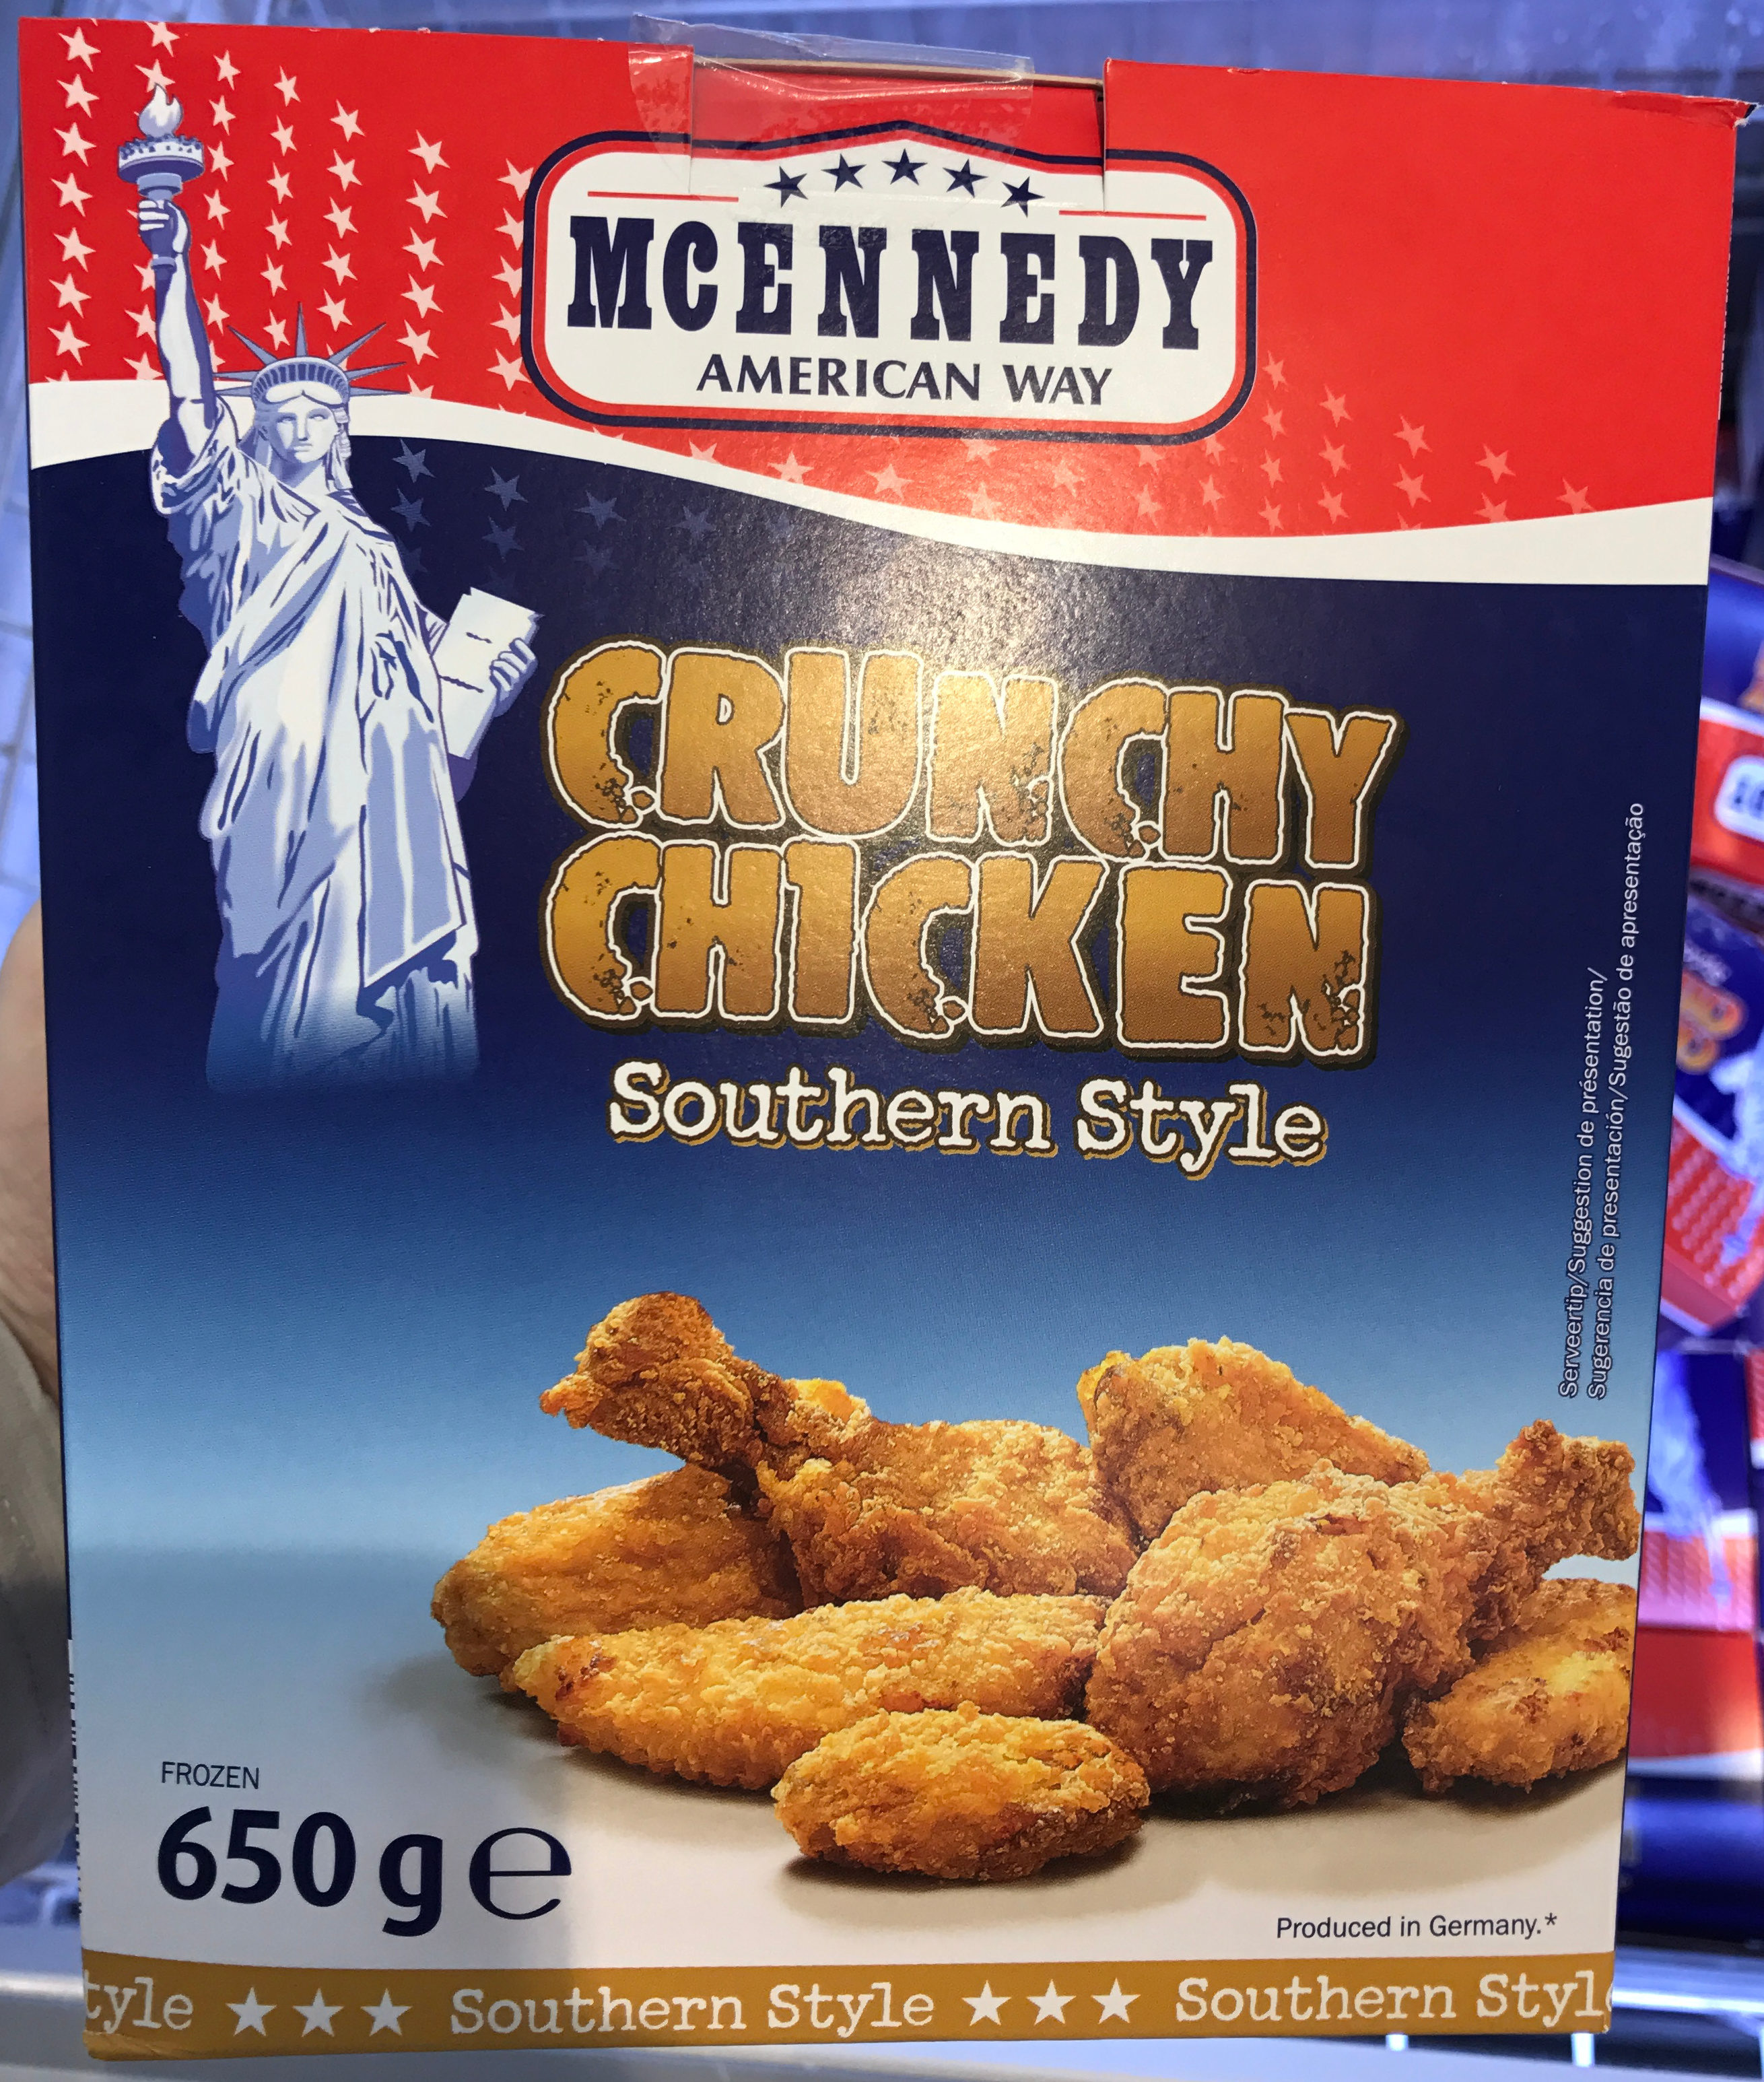 Crunchy Chicken Southern Style - Product